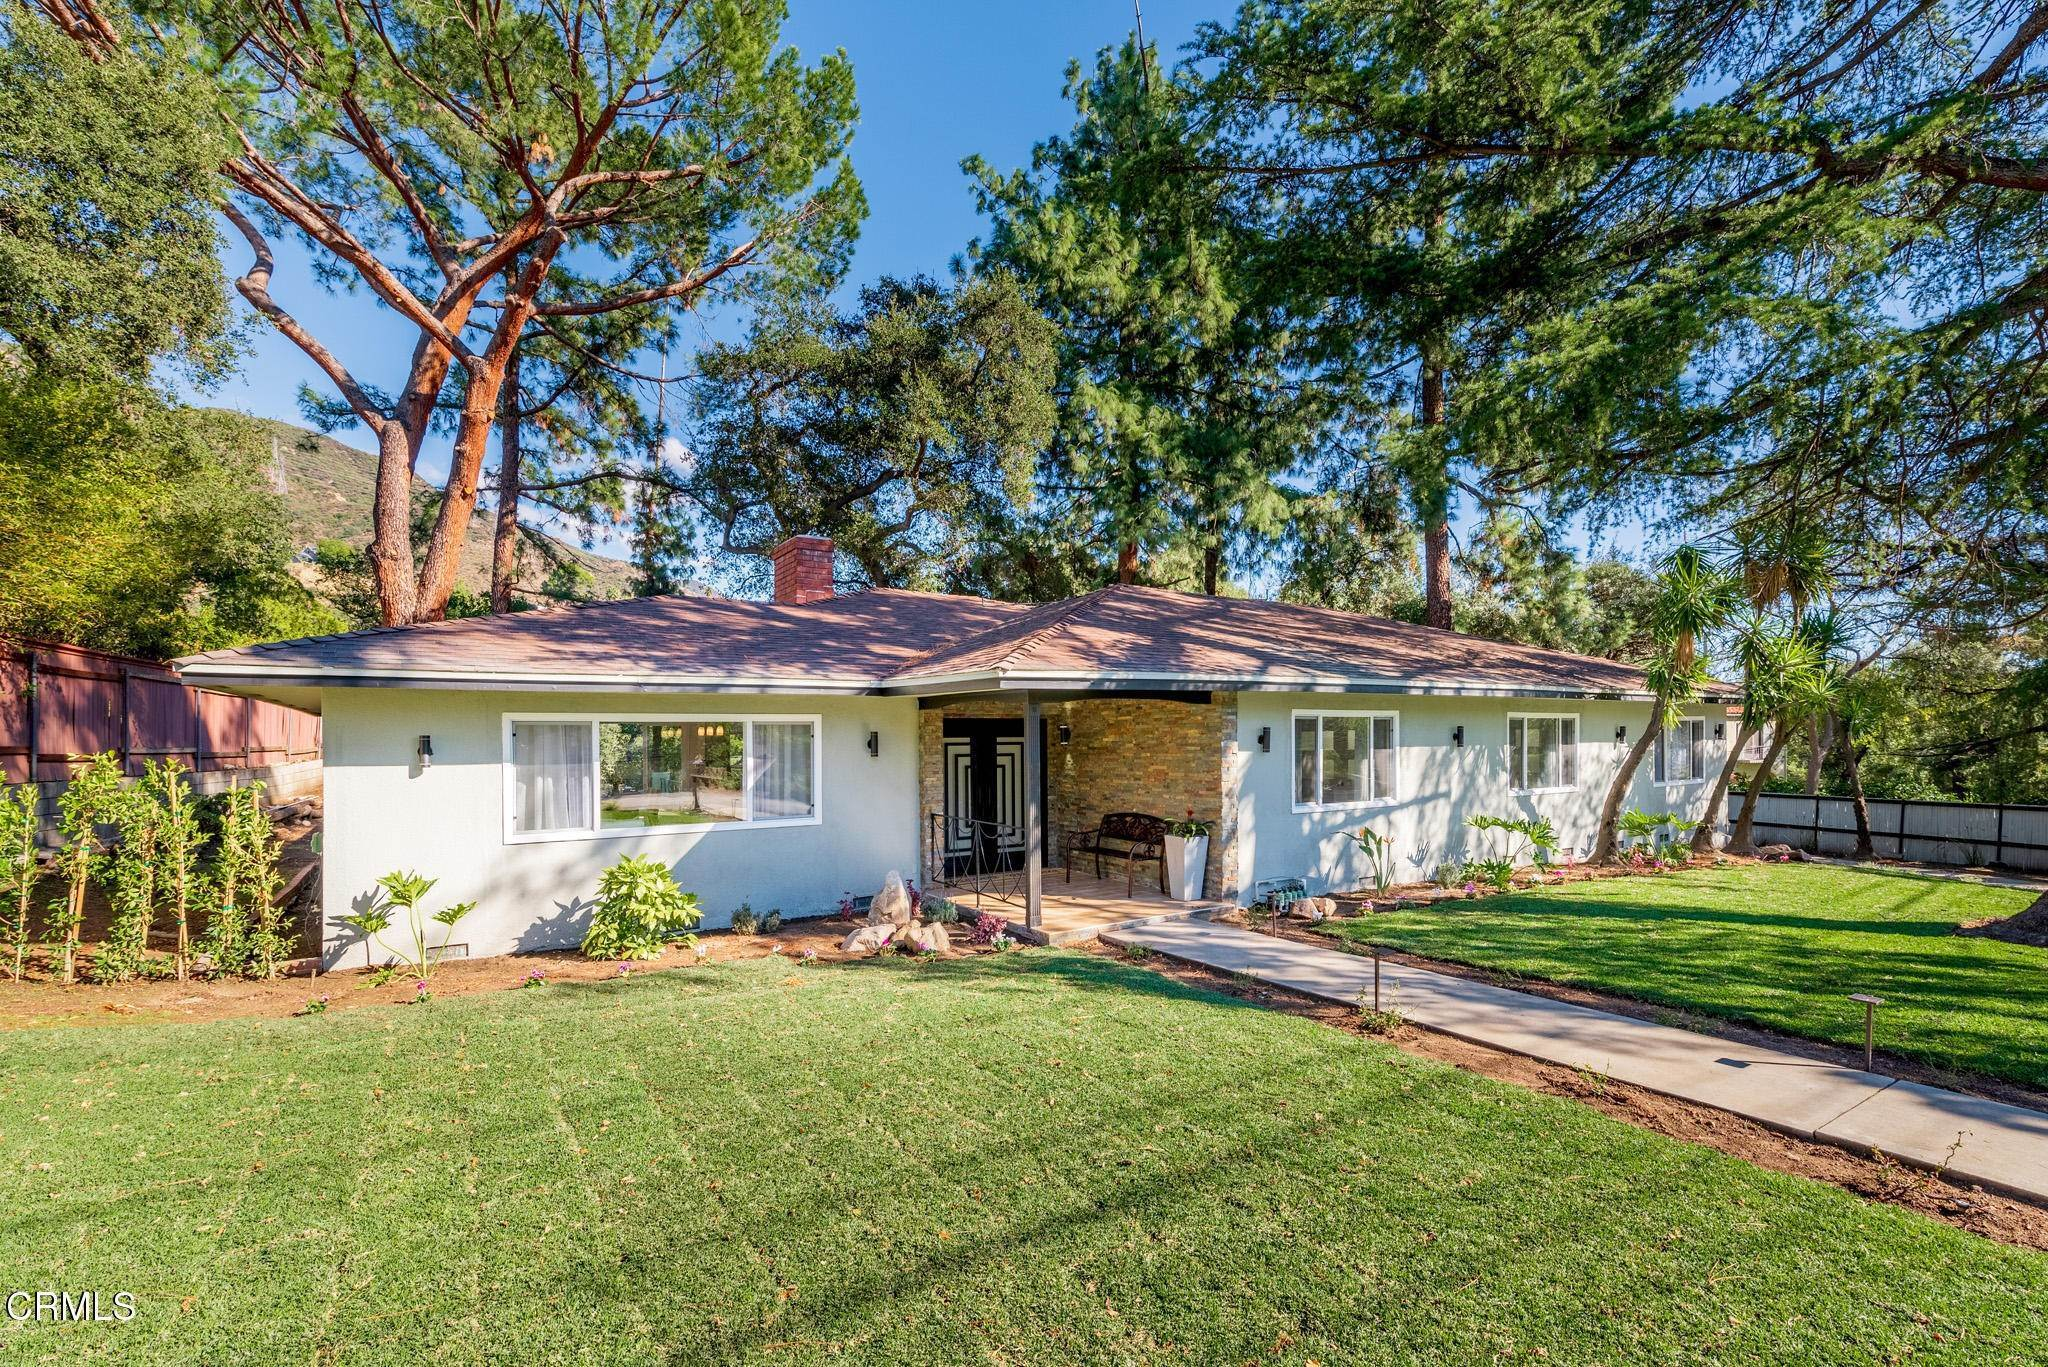 Single Family Homes for Sale at 3050 Via Maderas Street Altadena, California 91001 United States